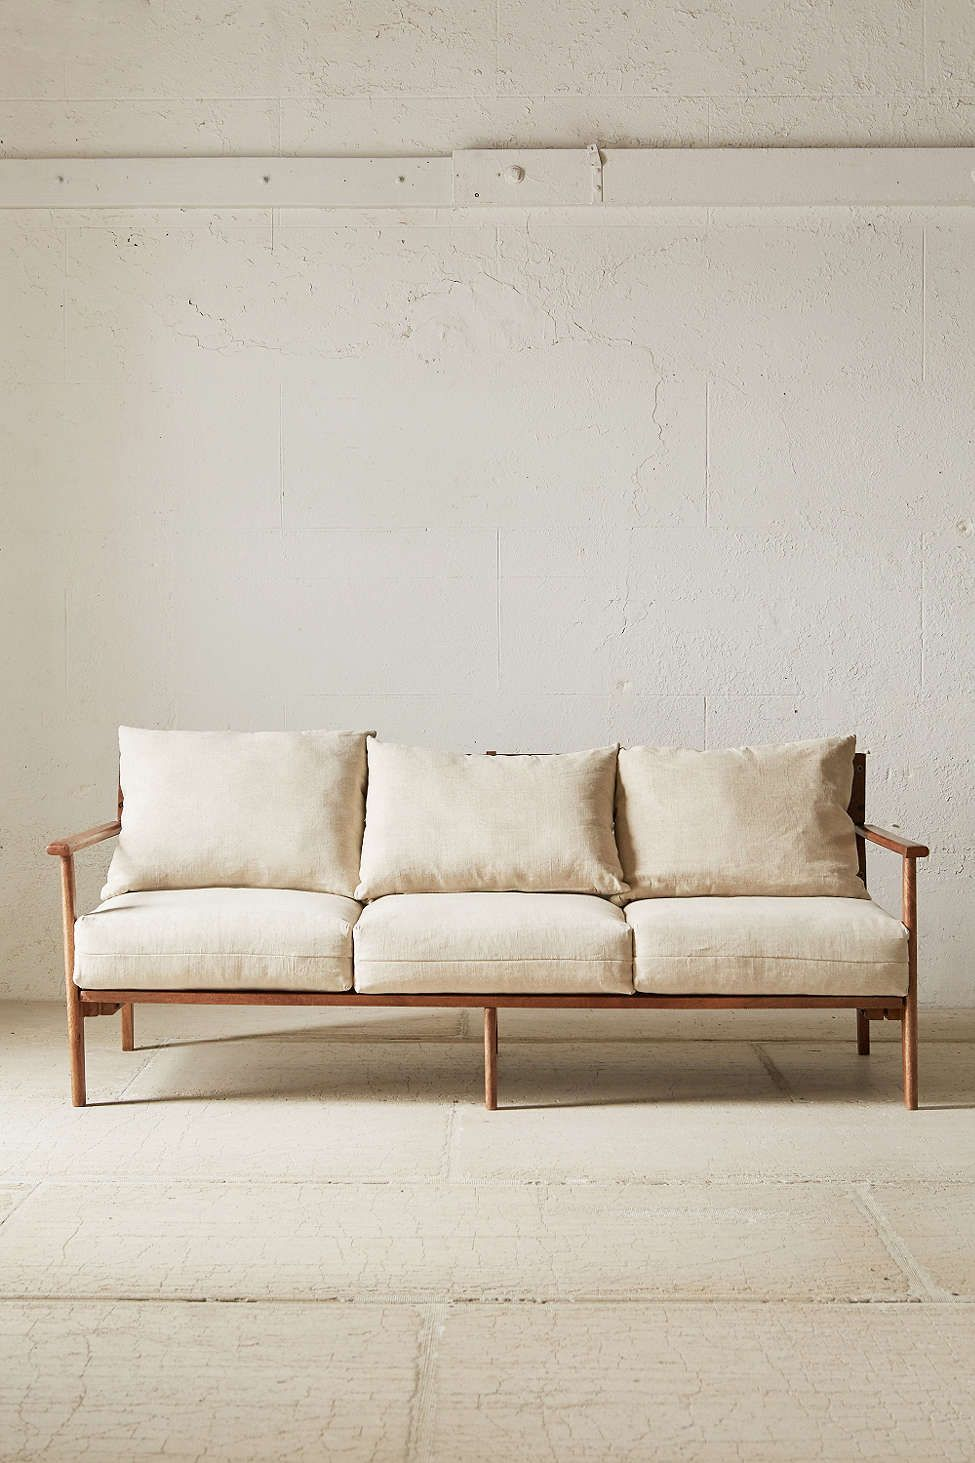 paxton sofa.   For the Home   Pinterest   Sillones, Sofá y Sillas